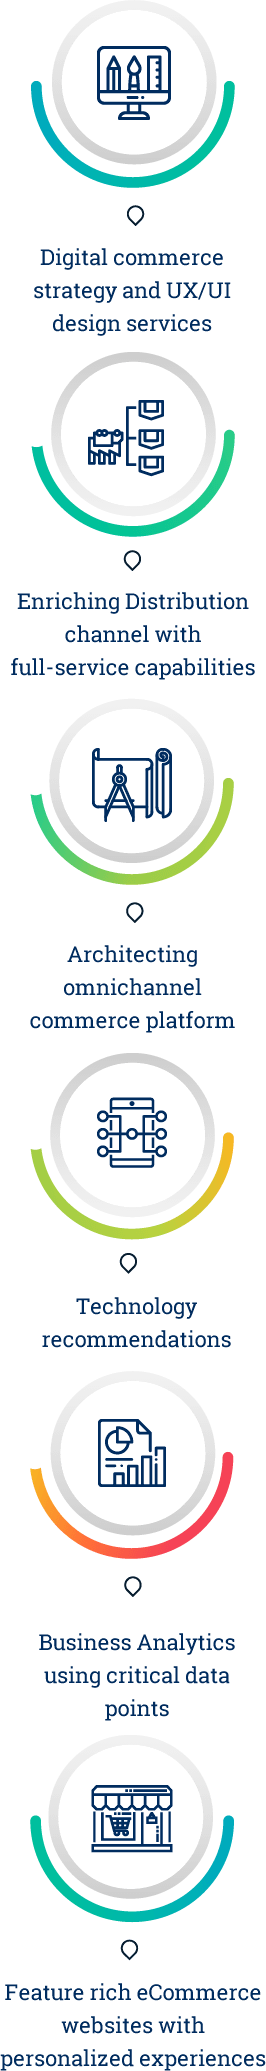 Digital Commerce Services